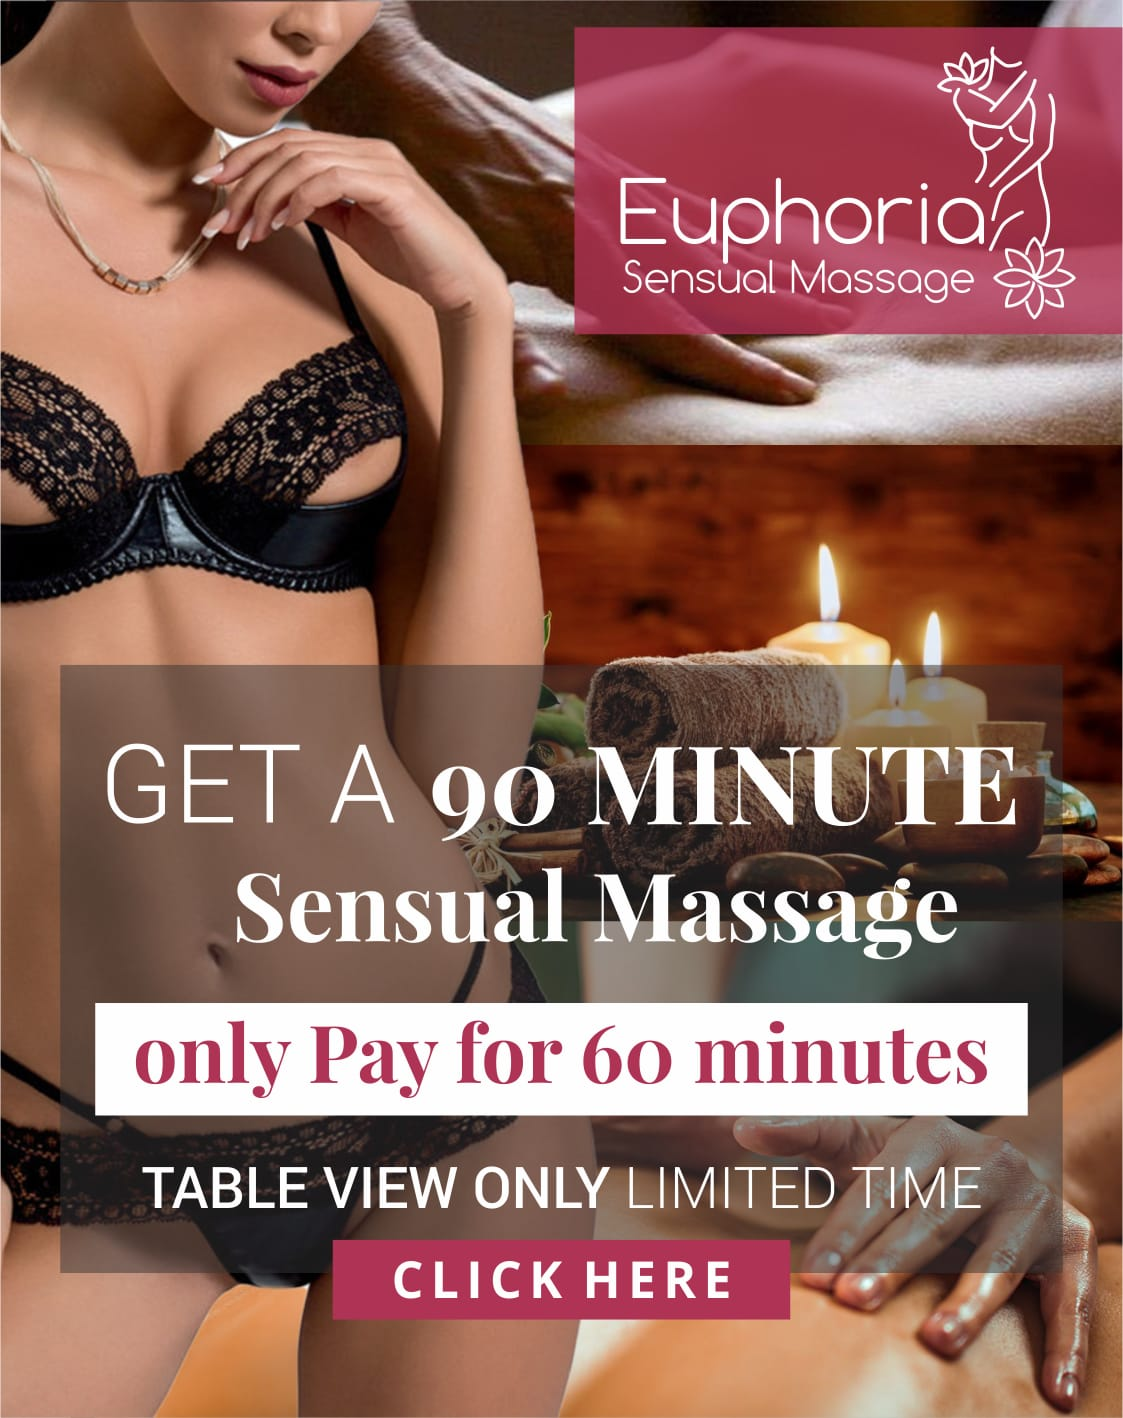 https://www.euphoria-sensual-massage.com